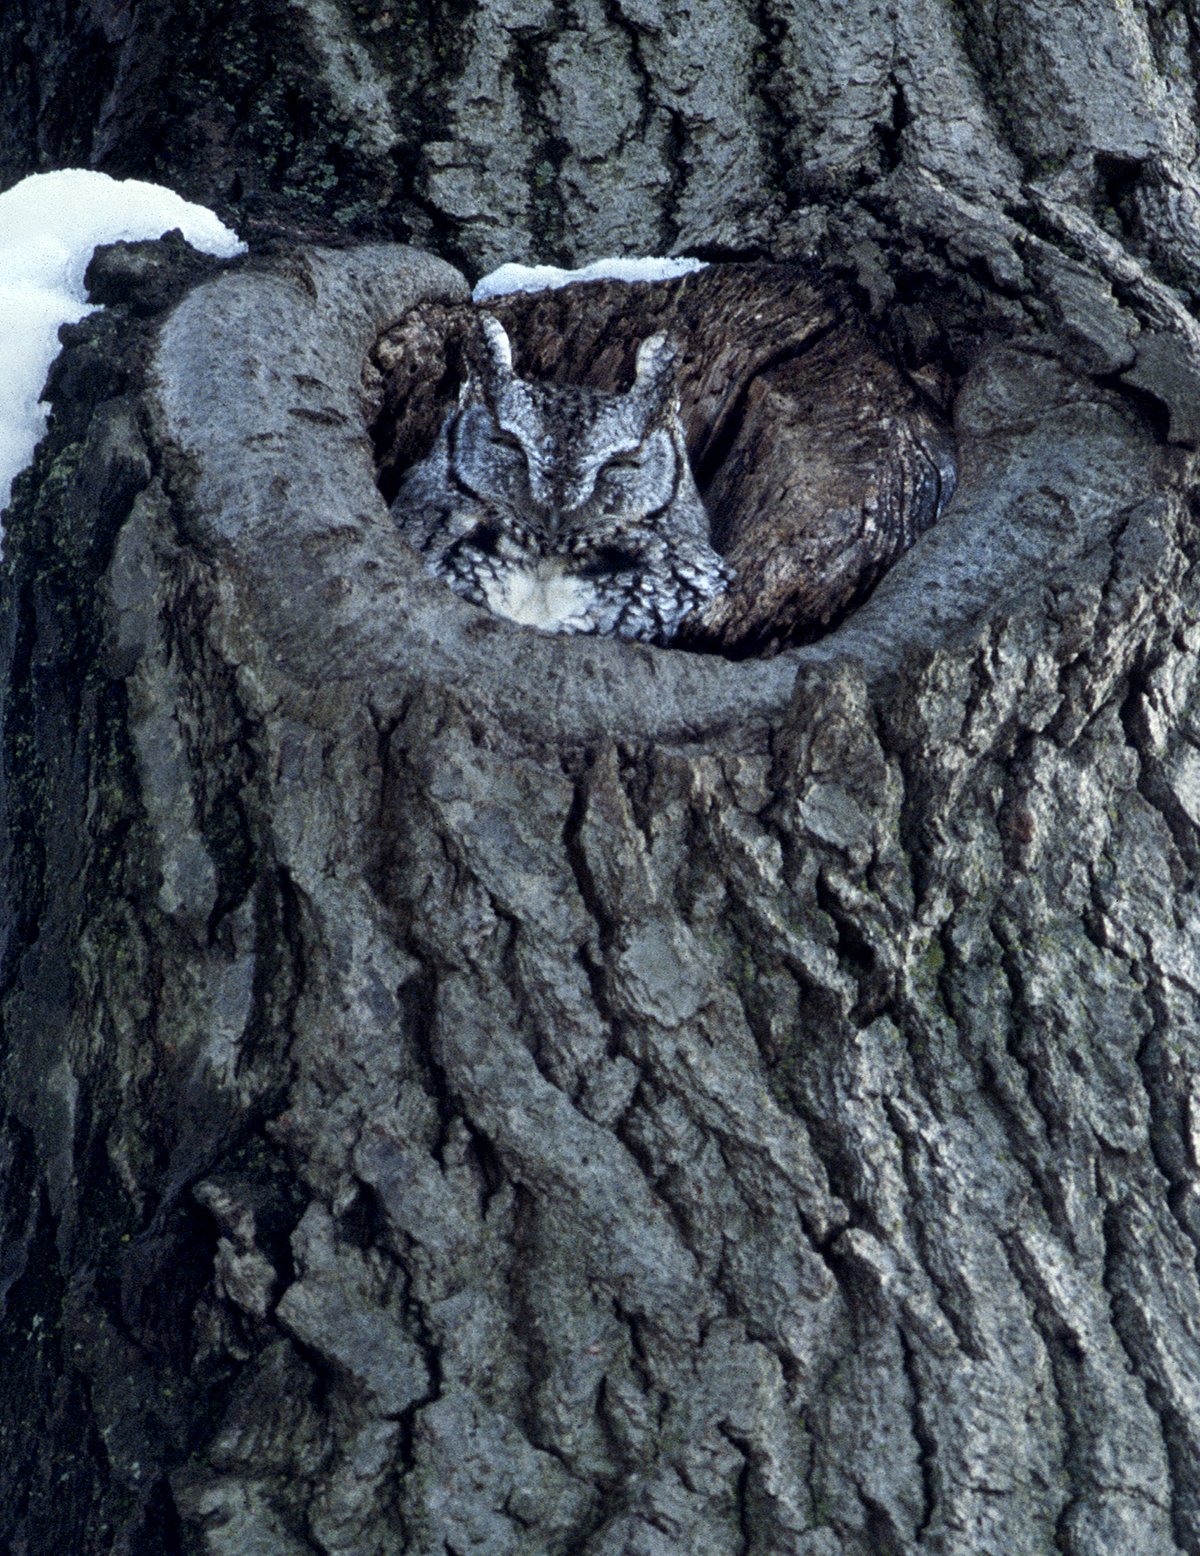 PHOTO: An eastern screech-owl snuggles in to its nest in winter. Photo